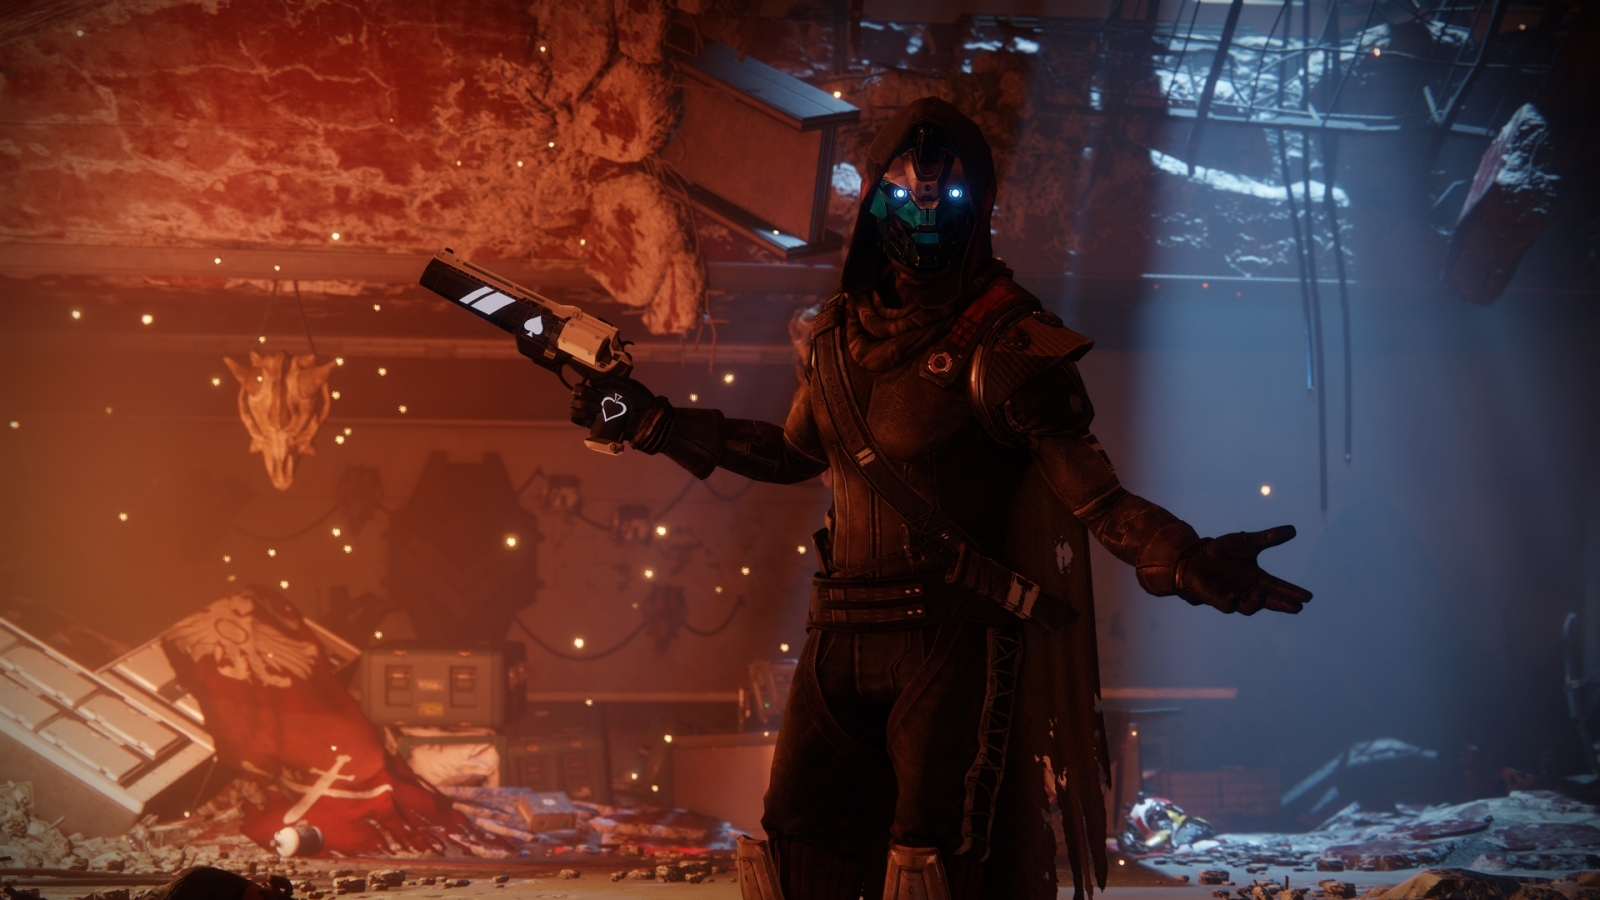 Destiny 2 beta extended, now ends on Wednesday